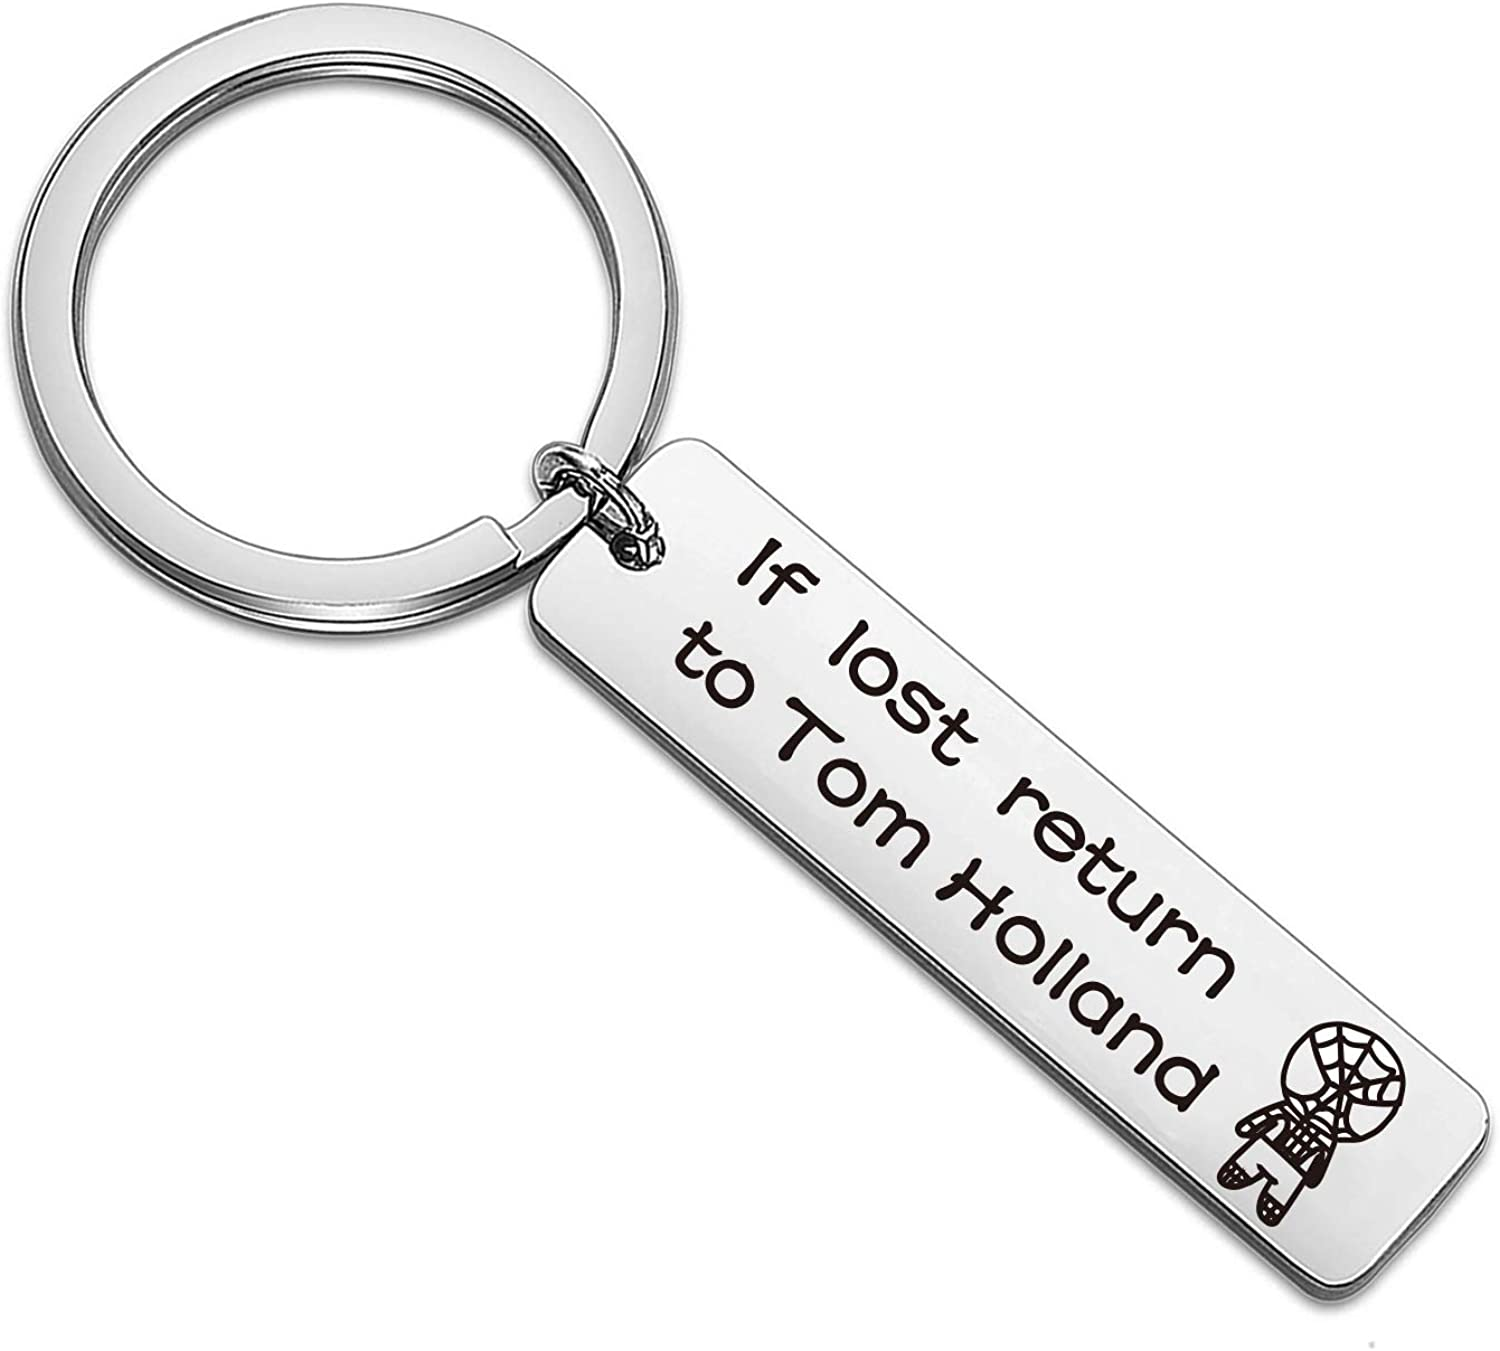 Inspirational Keychain If Lost Return to Tom Holland Gift for Son Daughter Friends Spiderman Jewery Shield Keychain for Spiderman Lover